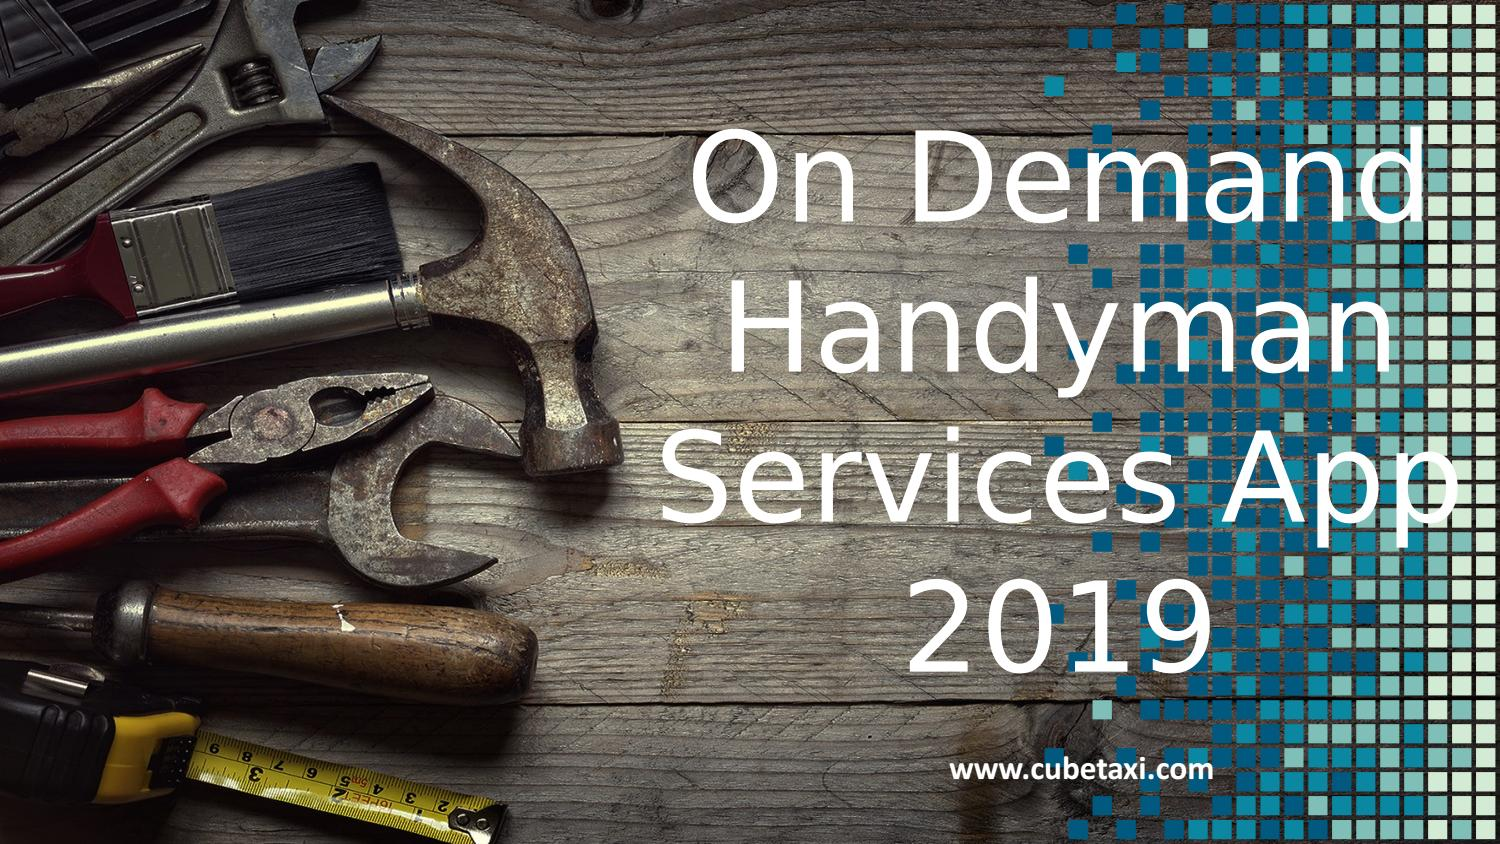 Uber for Handyman Services App 2019 by cubetaxi - issuu